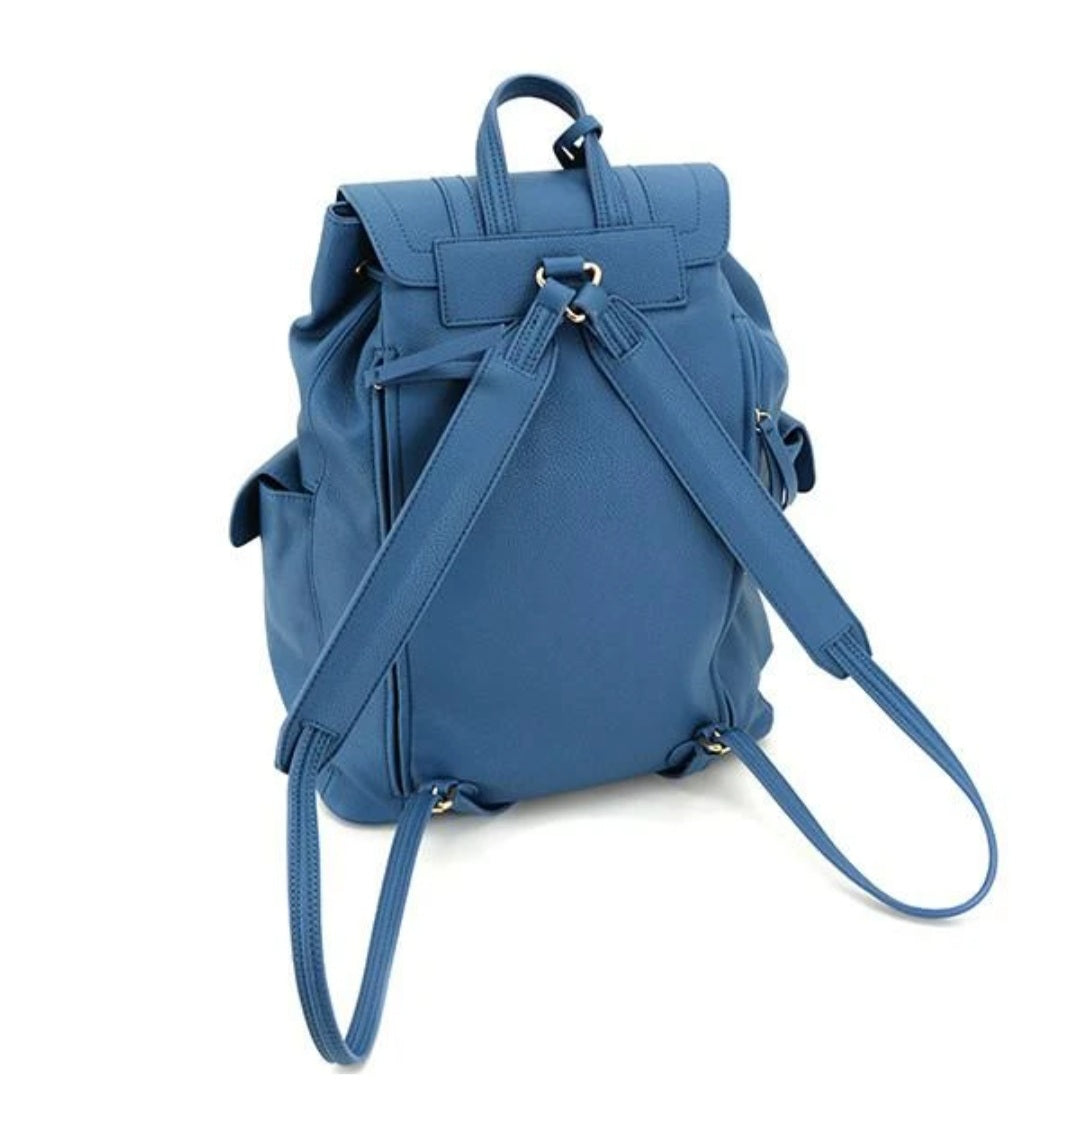 Equinox Concealed Carry Backpack. in blue. 2 side pockets, big enough for water bottles on either side. T wo buckle straps in the front with silver toned hardware. Adjustable straps. Concealed Carry Compartment is ambidextrous and is can carry up to a large framed handgun